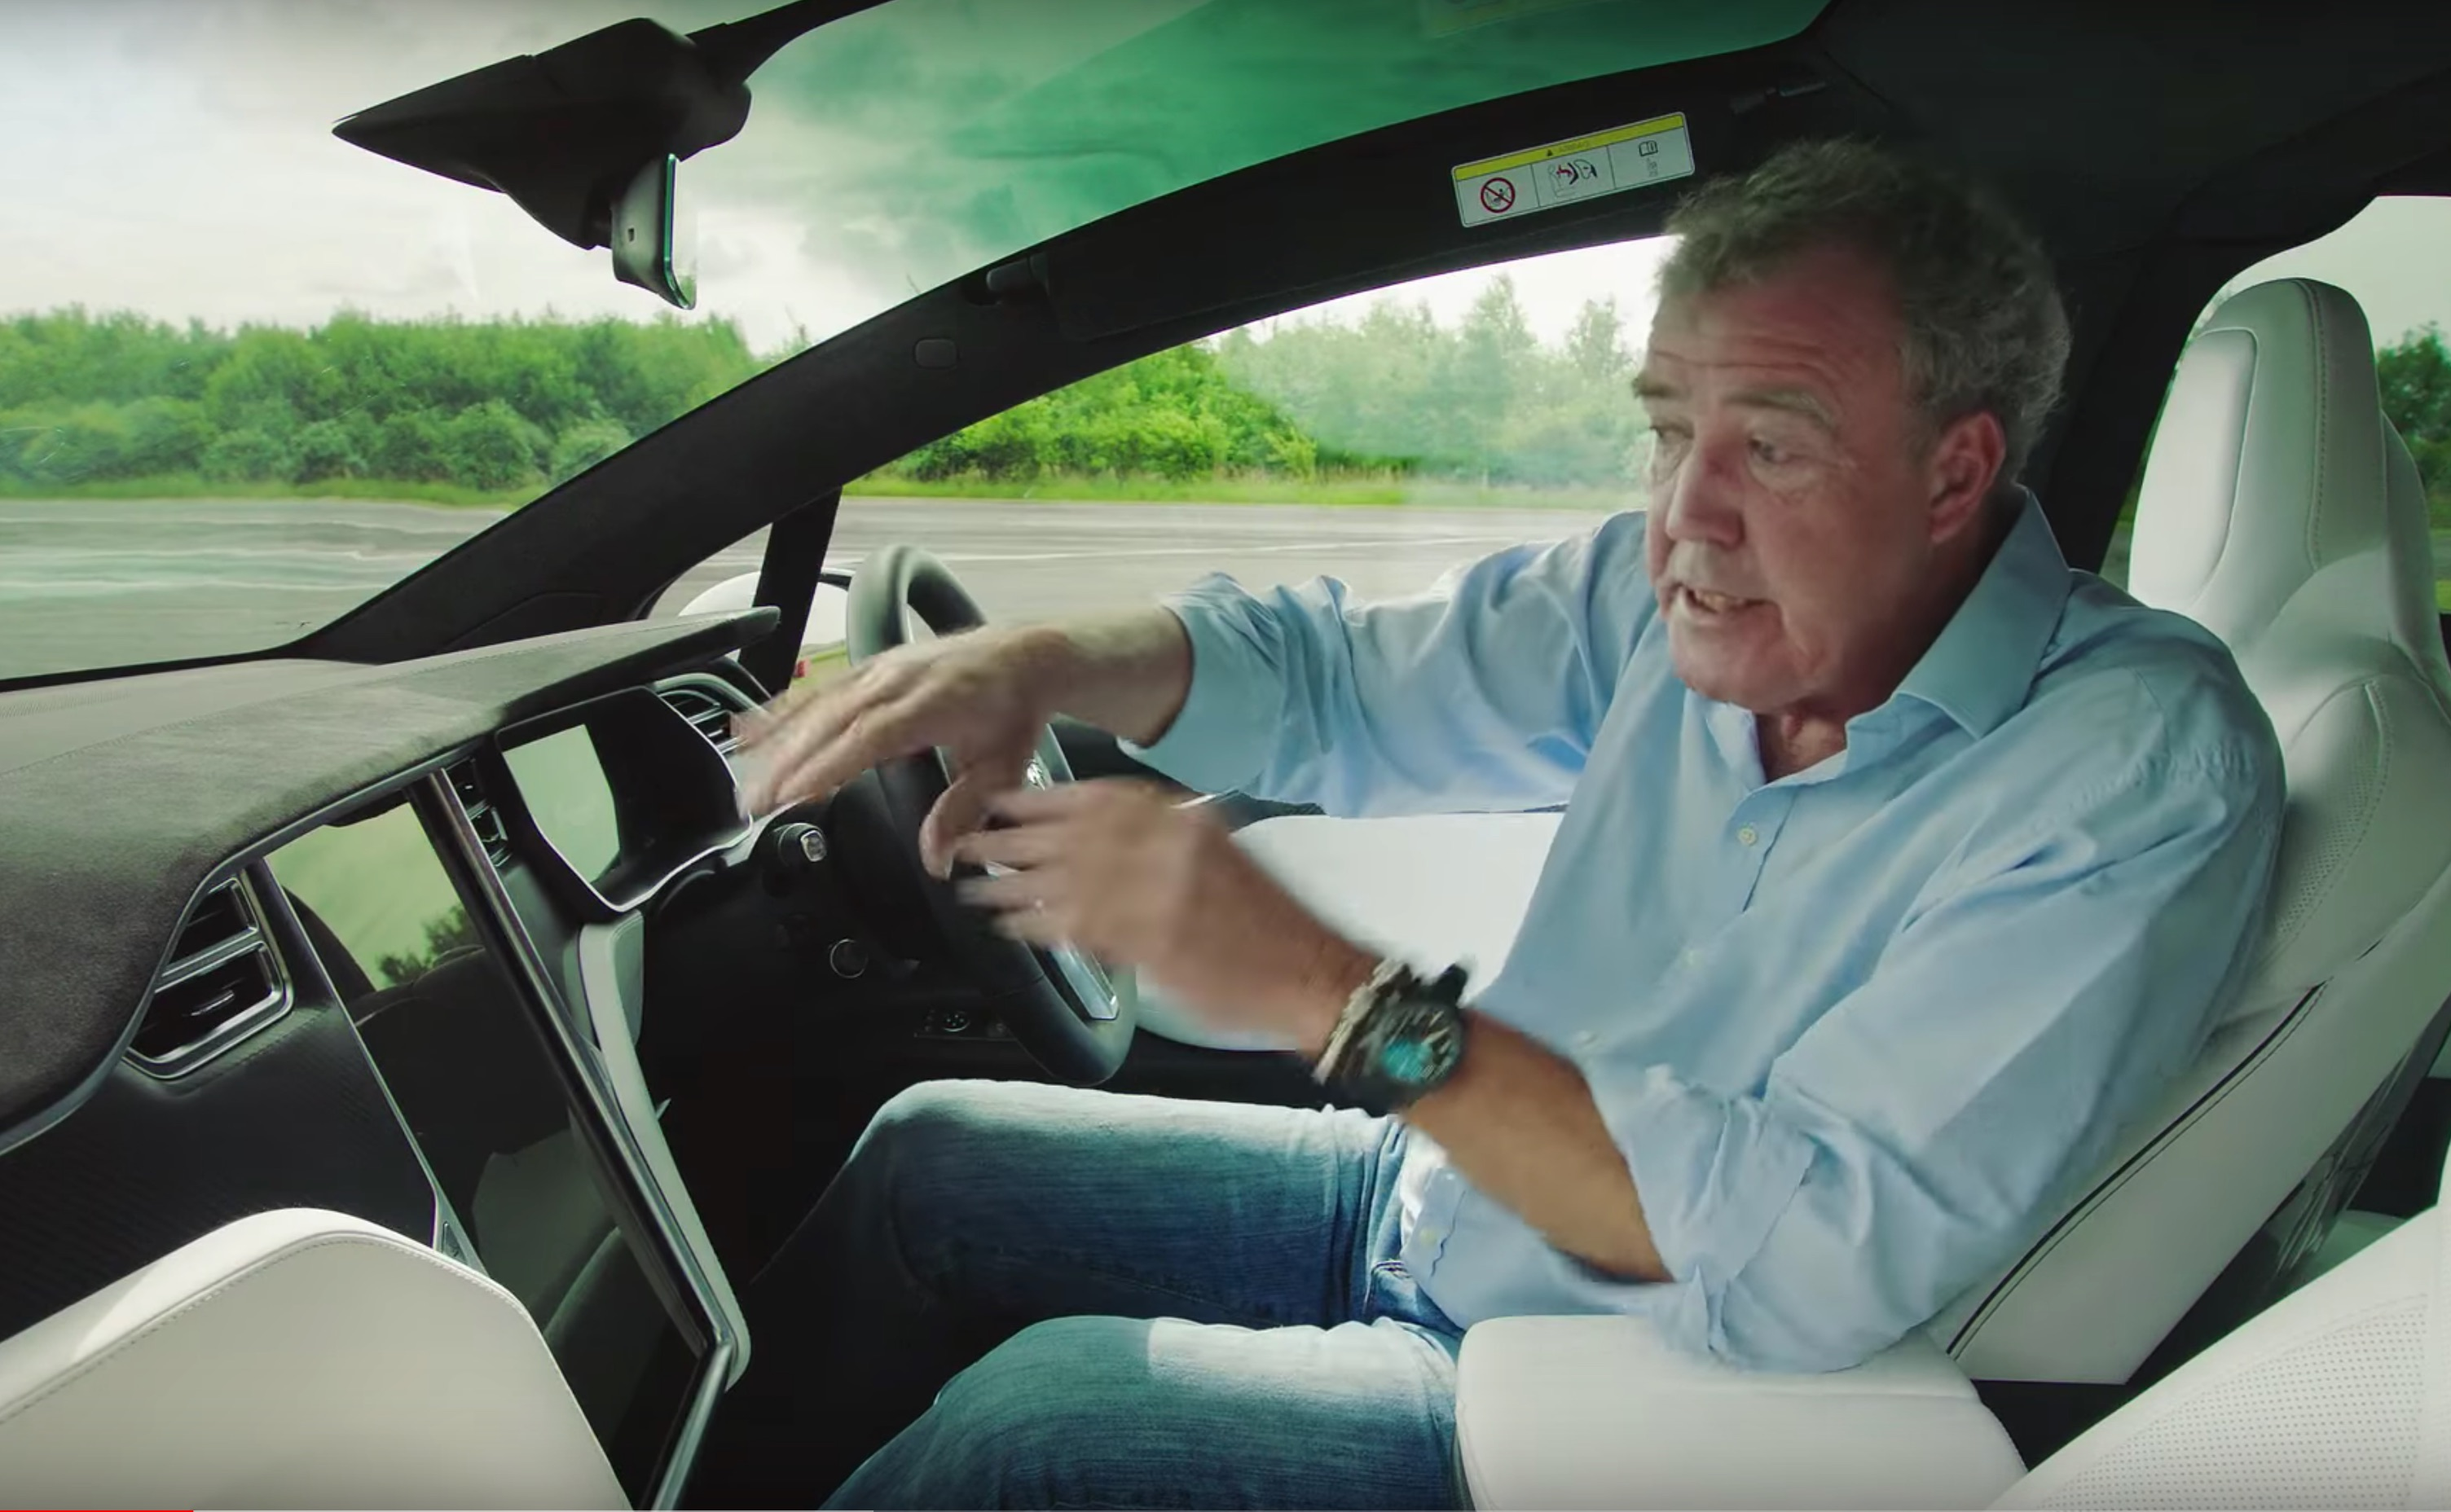 jeremy-clarkson-grand-tour-tesla-model-x-interior